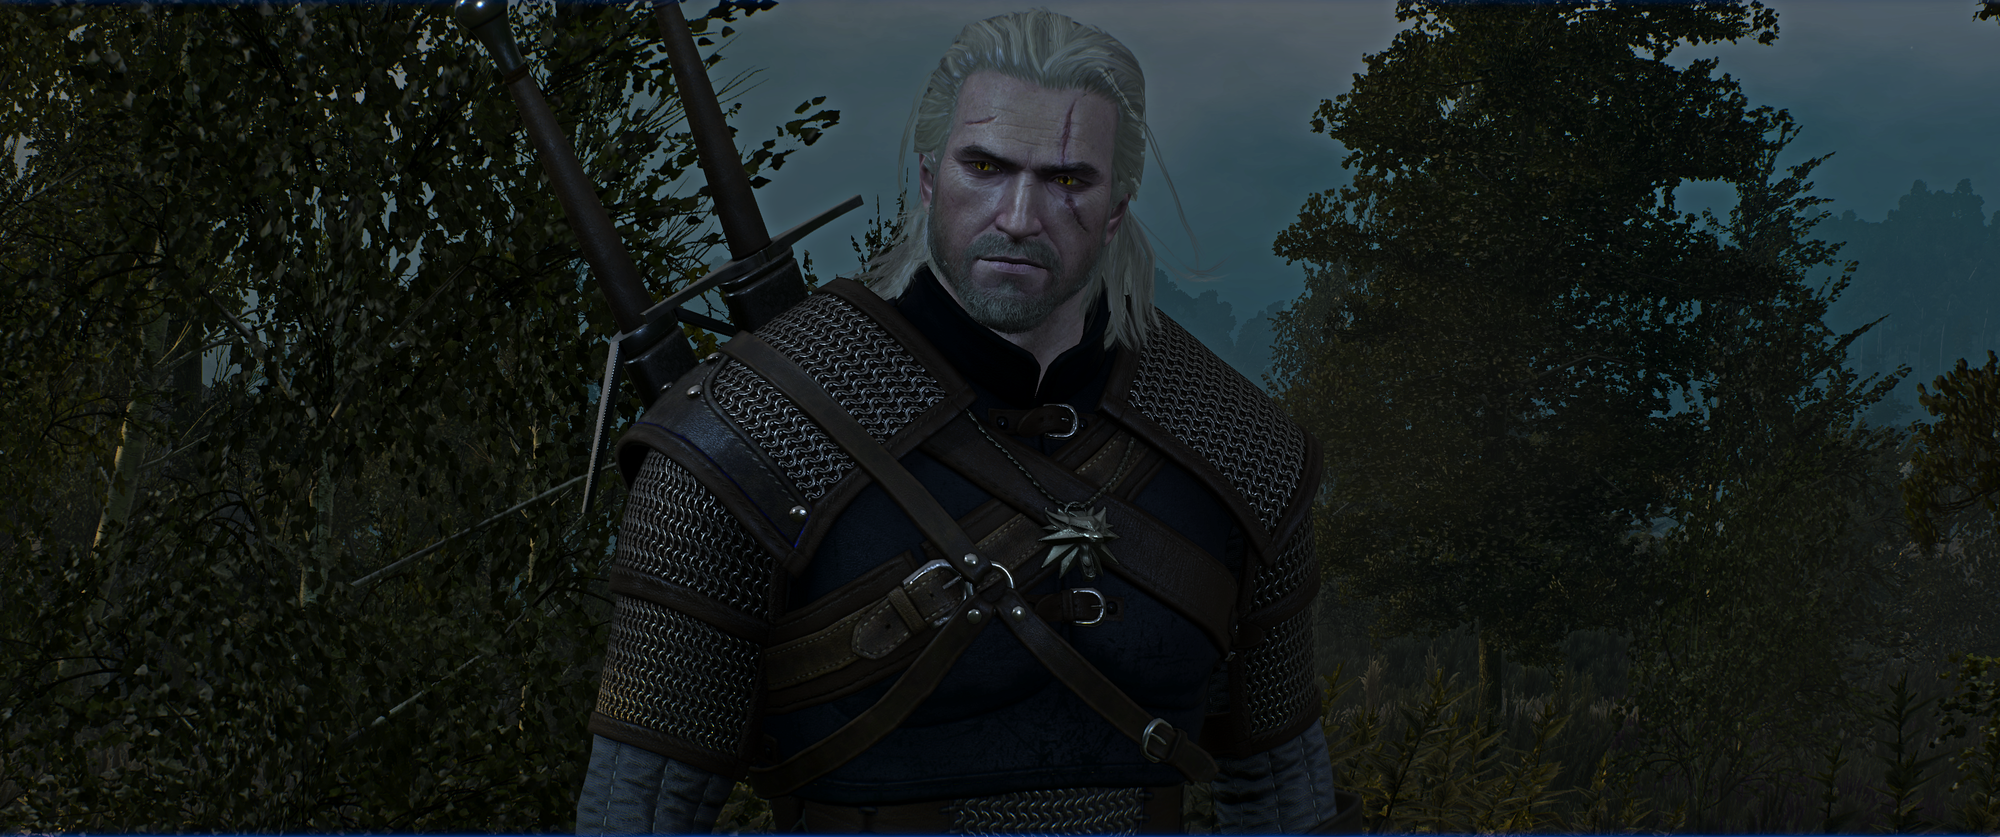 The Witcher 3 Screenshot 2019.01.02 - 20.04.33.48.png